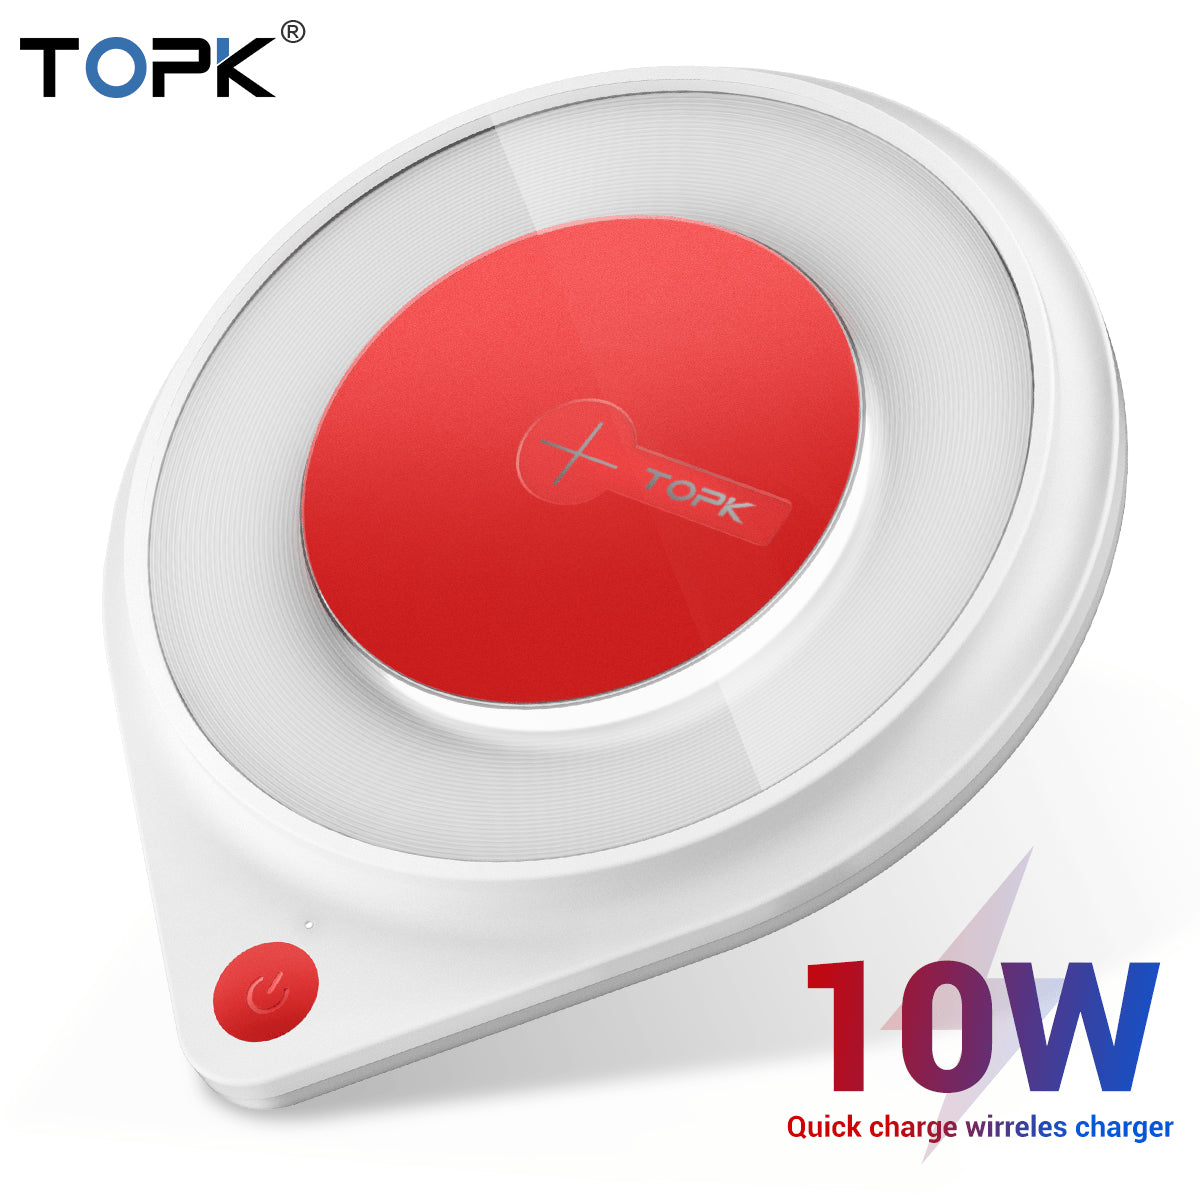 Fast Wireless Charger 10W for iPhone 11 XR X Max Pro 8 Plus Samsung S10 S9 S8 Pic1